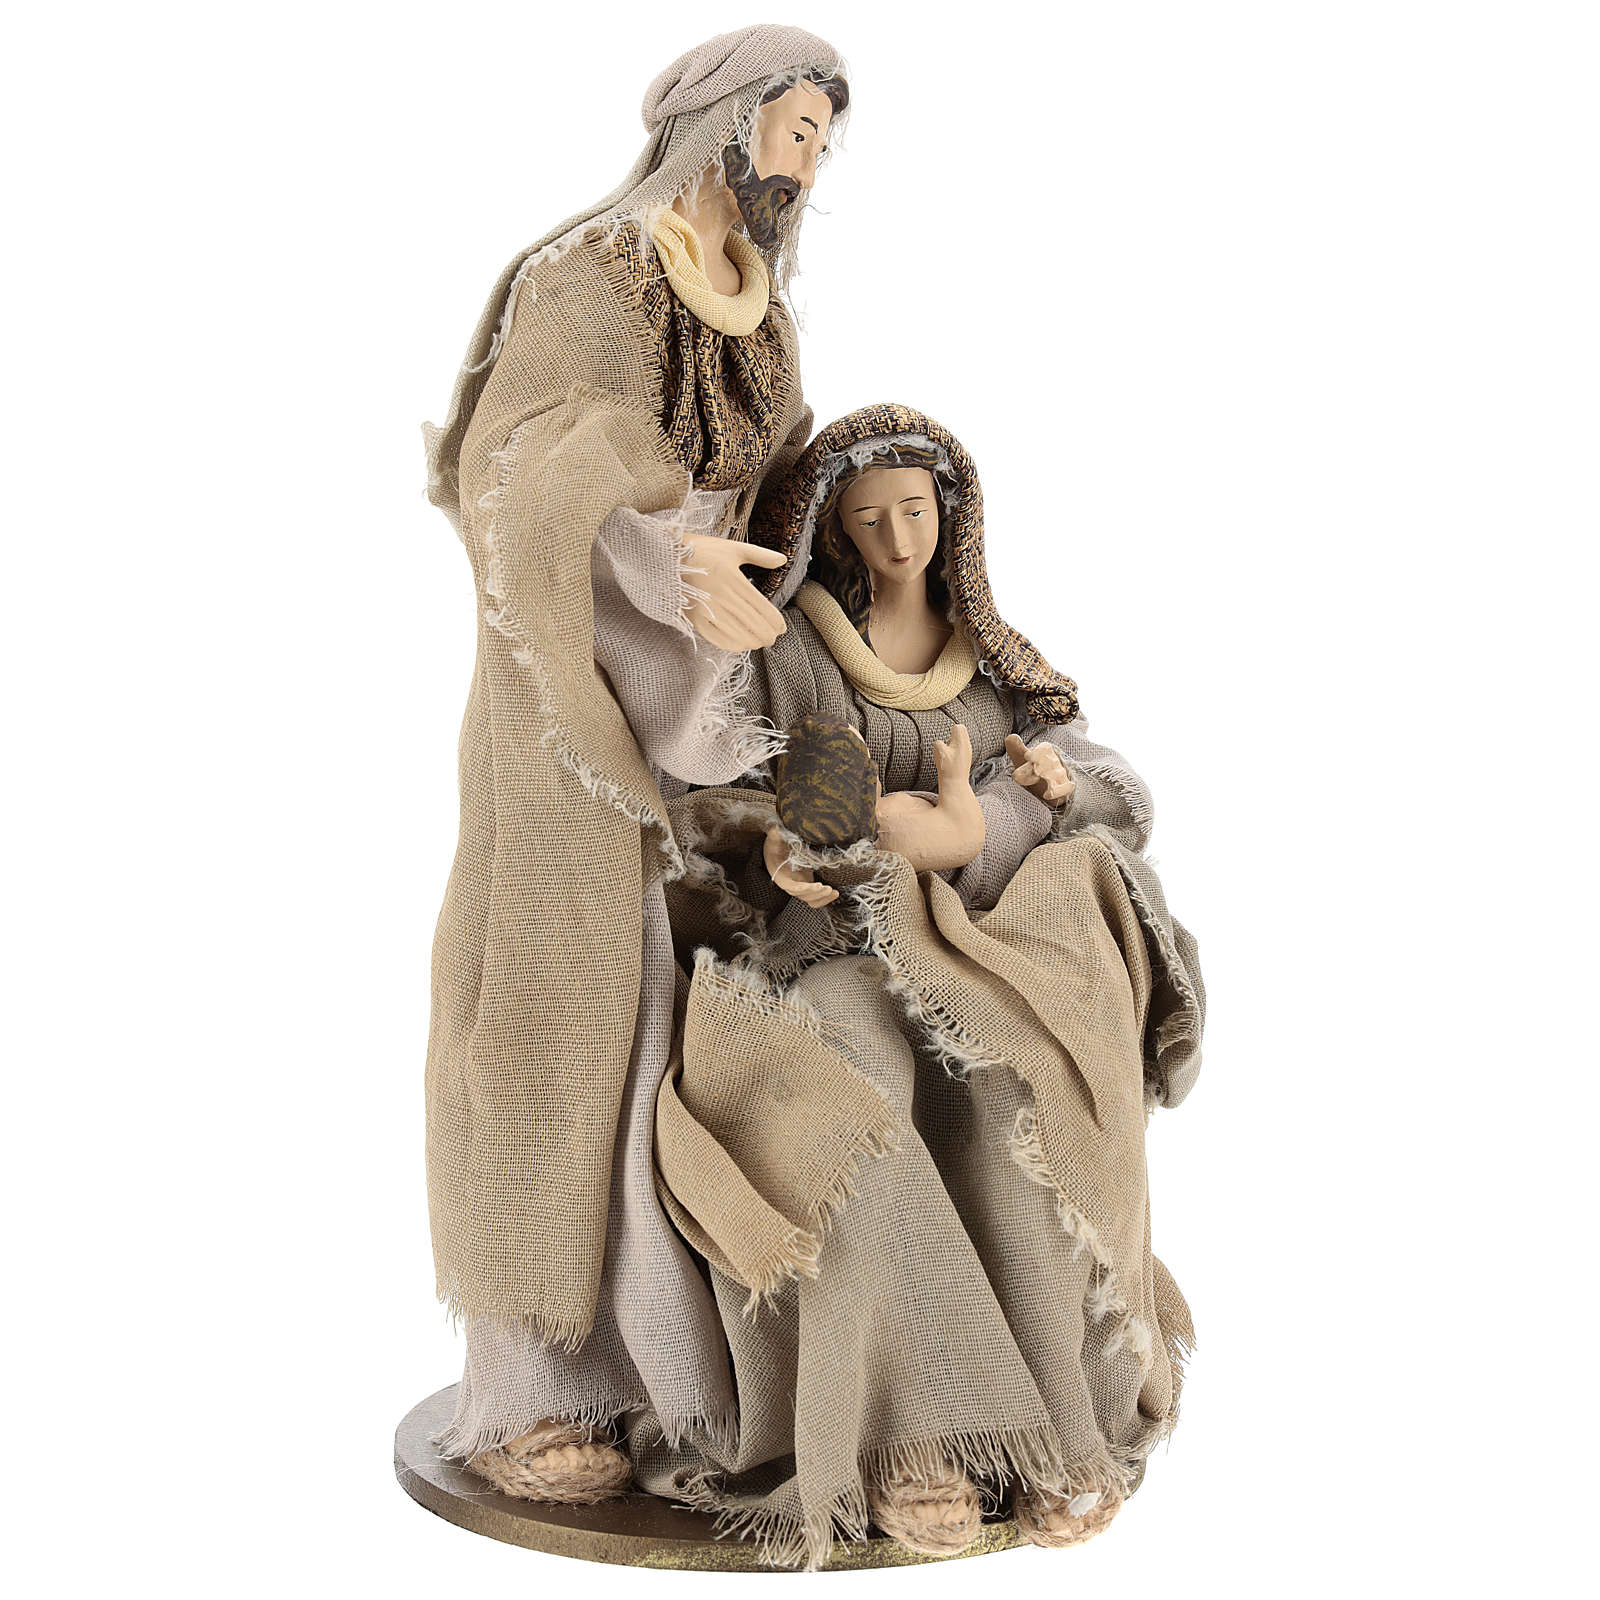 Natività in resina 30 cm su base unica toni beige 3